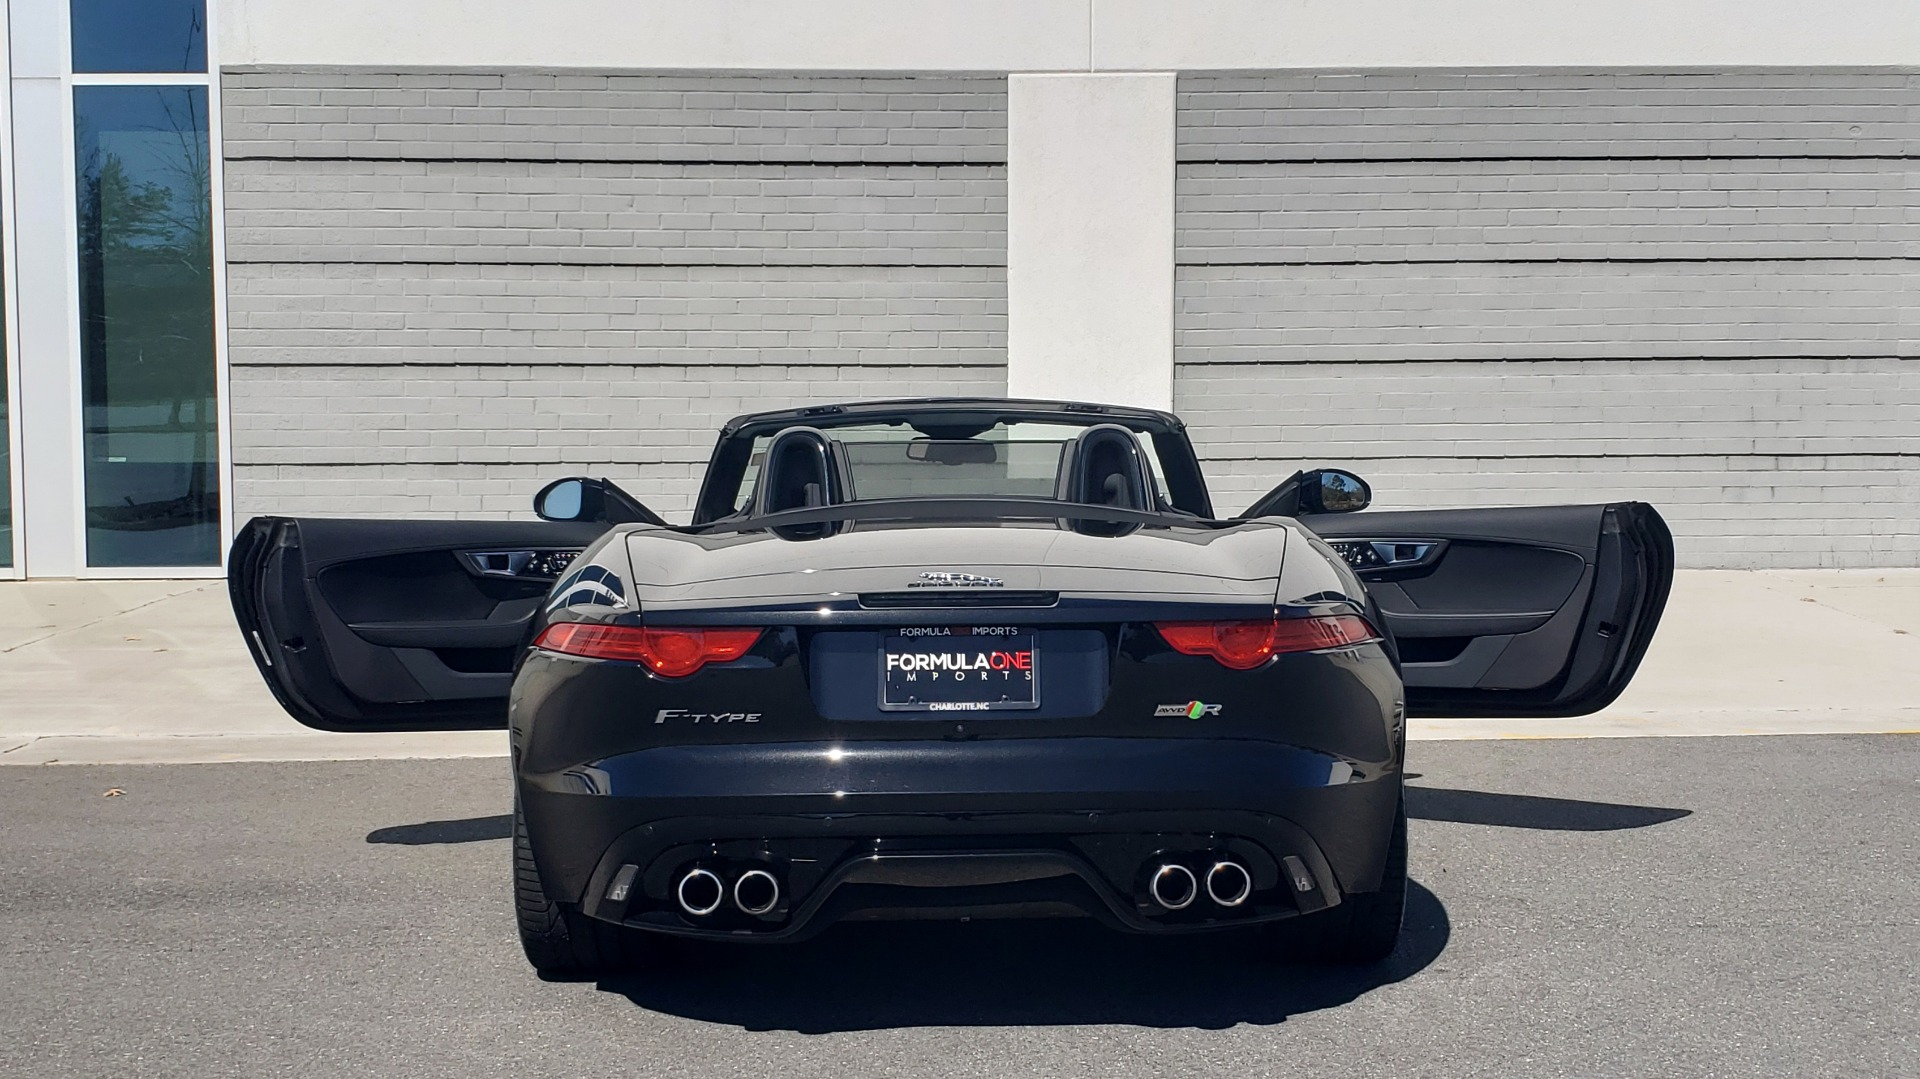 Used 2016 Jaguar F-TYPE R CONVERTIBLE / SC 5.0L 550HP / VISION PACK 3 / BSM / REARVIEW for sale $63,000 at Formula Imports in Charlotte NC 28227 75